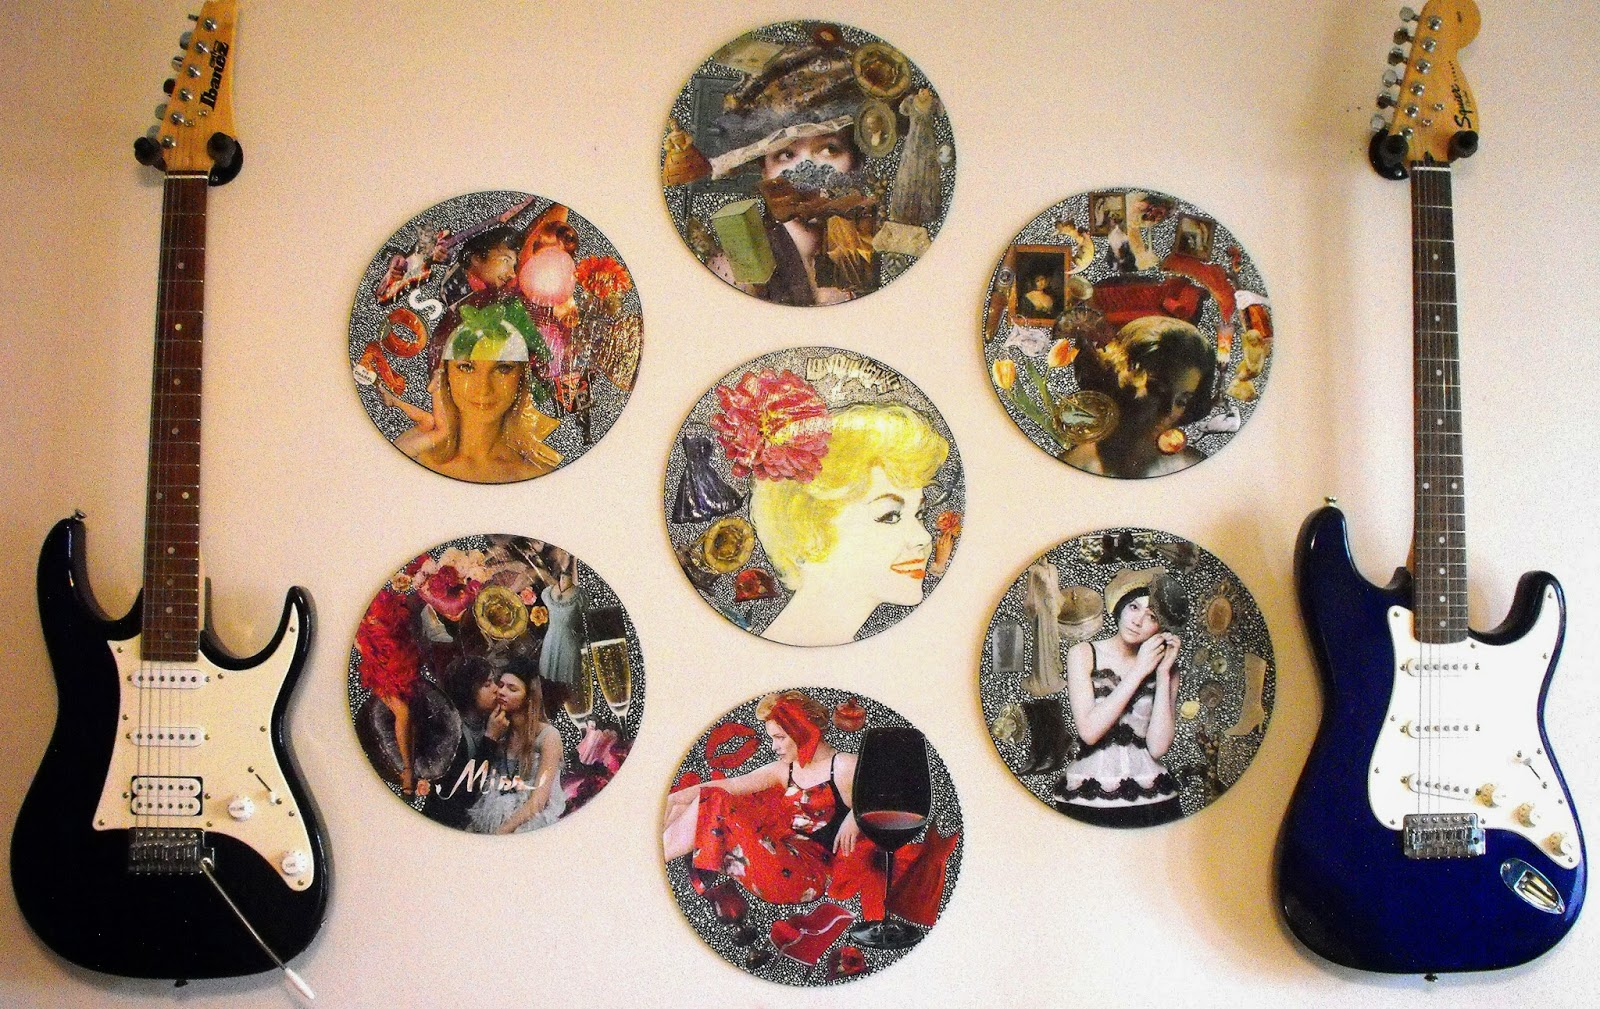 Upcycled Wall Art Eco Friendly Freckles A Tour Of My Art Studio And The Two Books